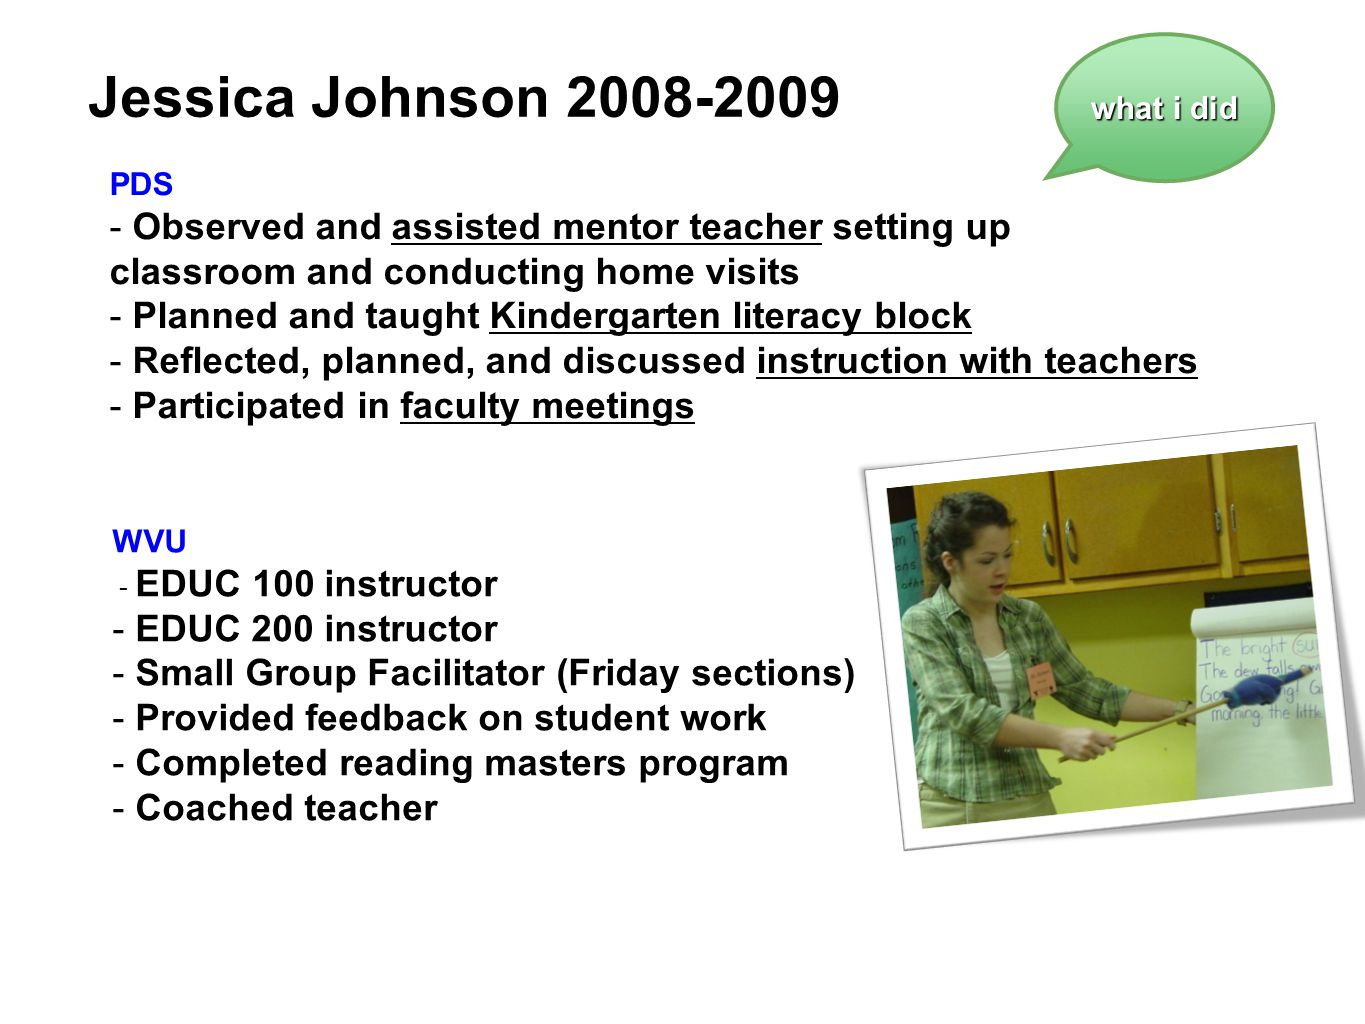 Jessica Johnson 2008-2009 what i did. PDS. - Observed and assisted mentor teacher setting up classroom and conducting home visits.